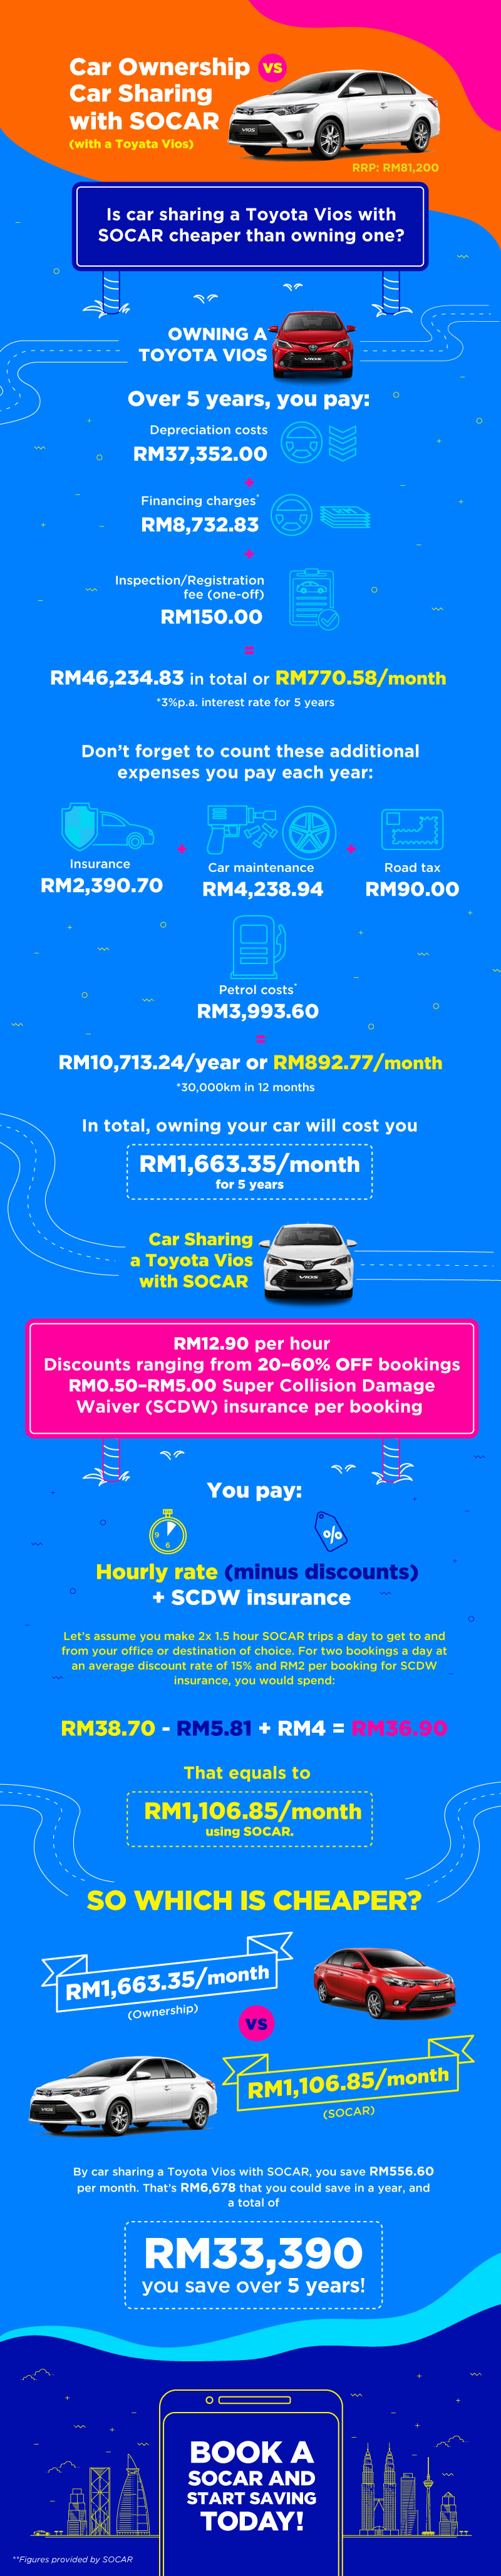 SOCAR car ownership vs car sharing toyota vios infographic